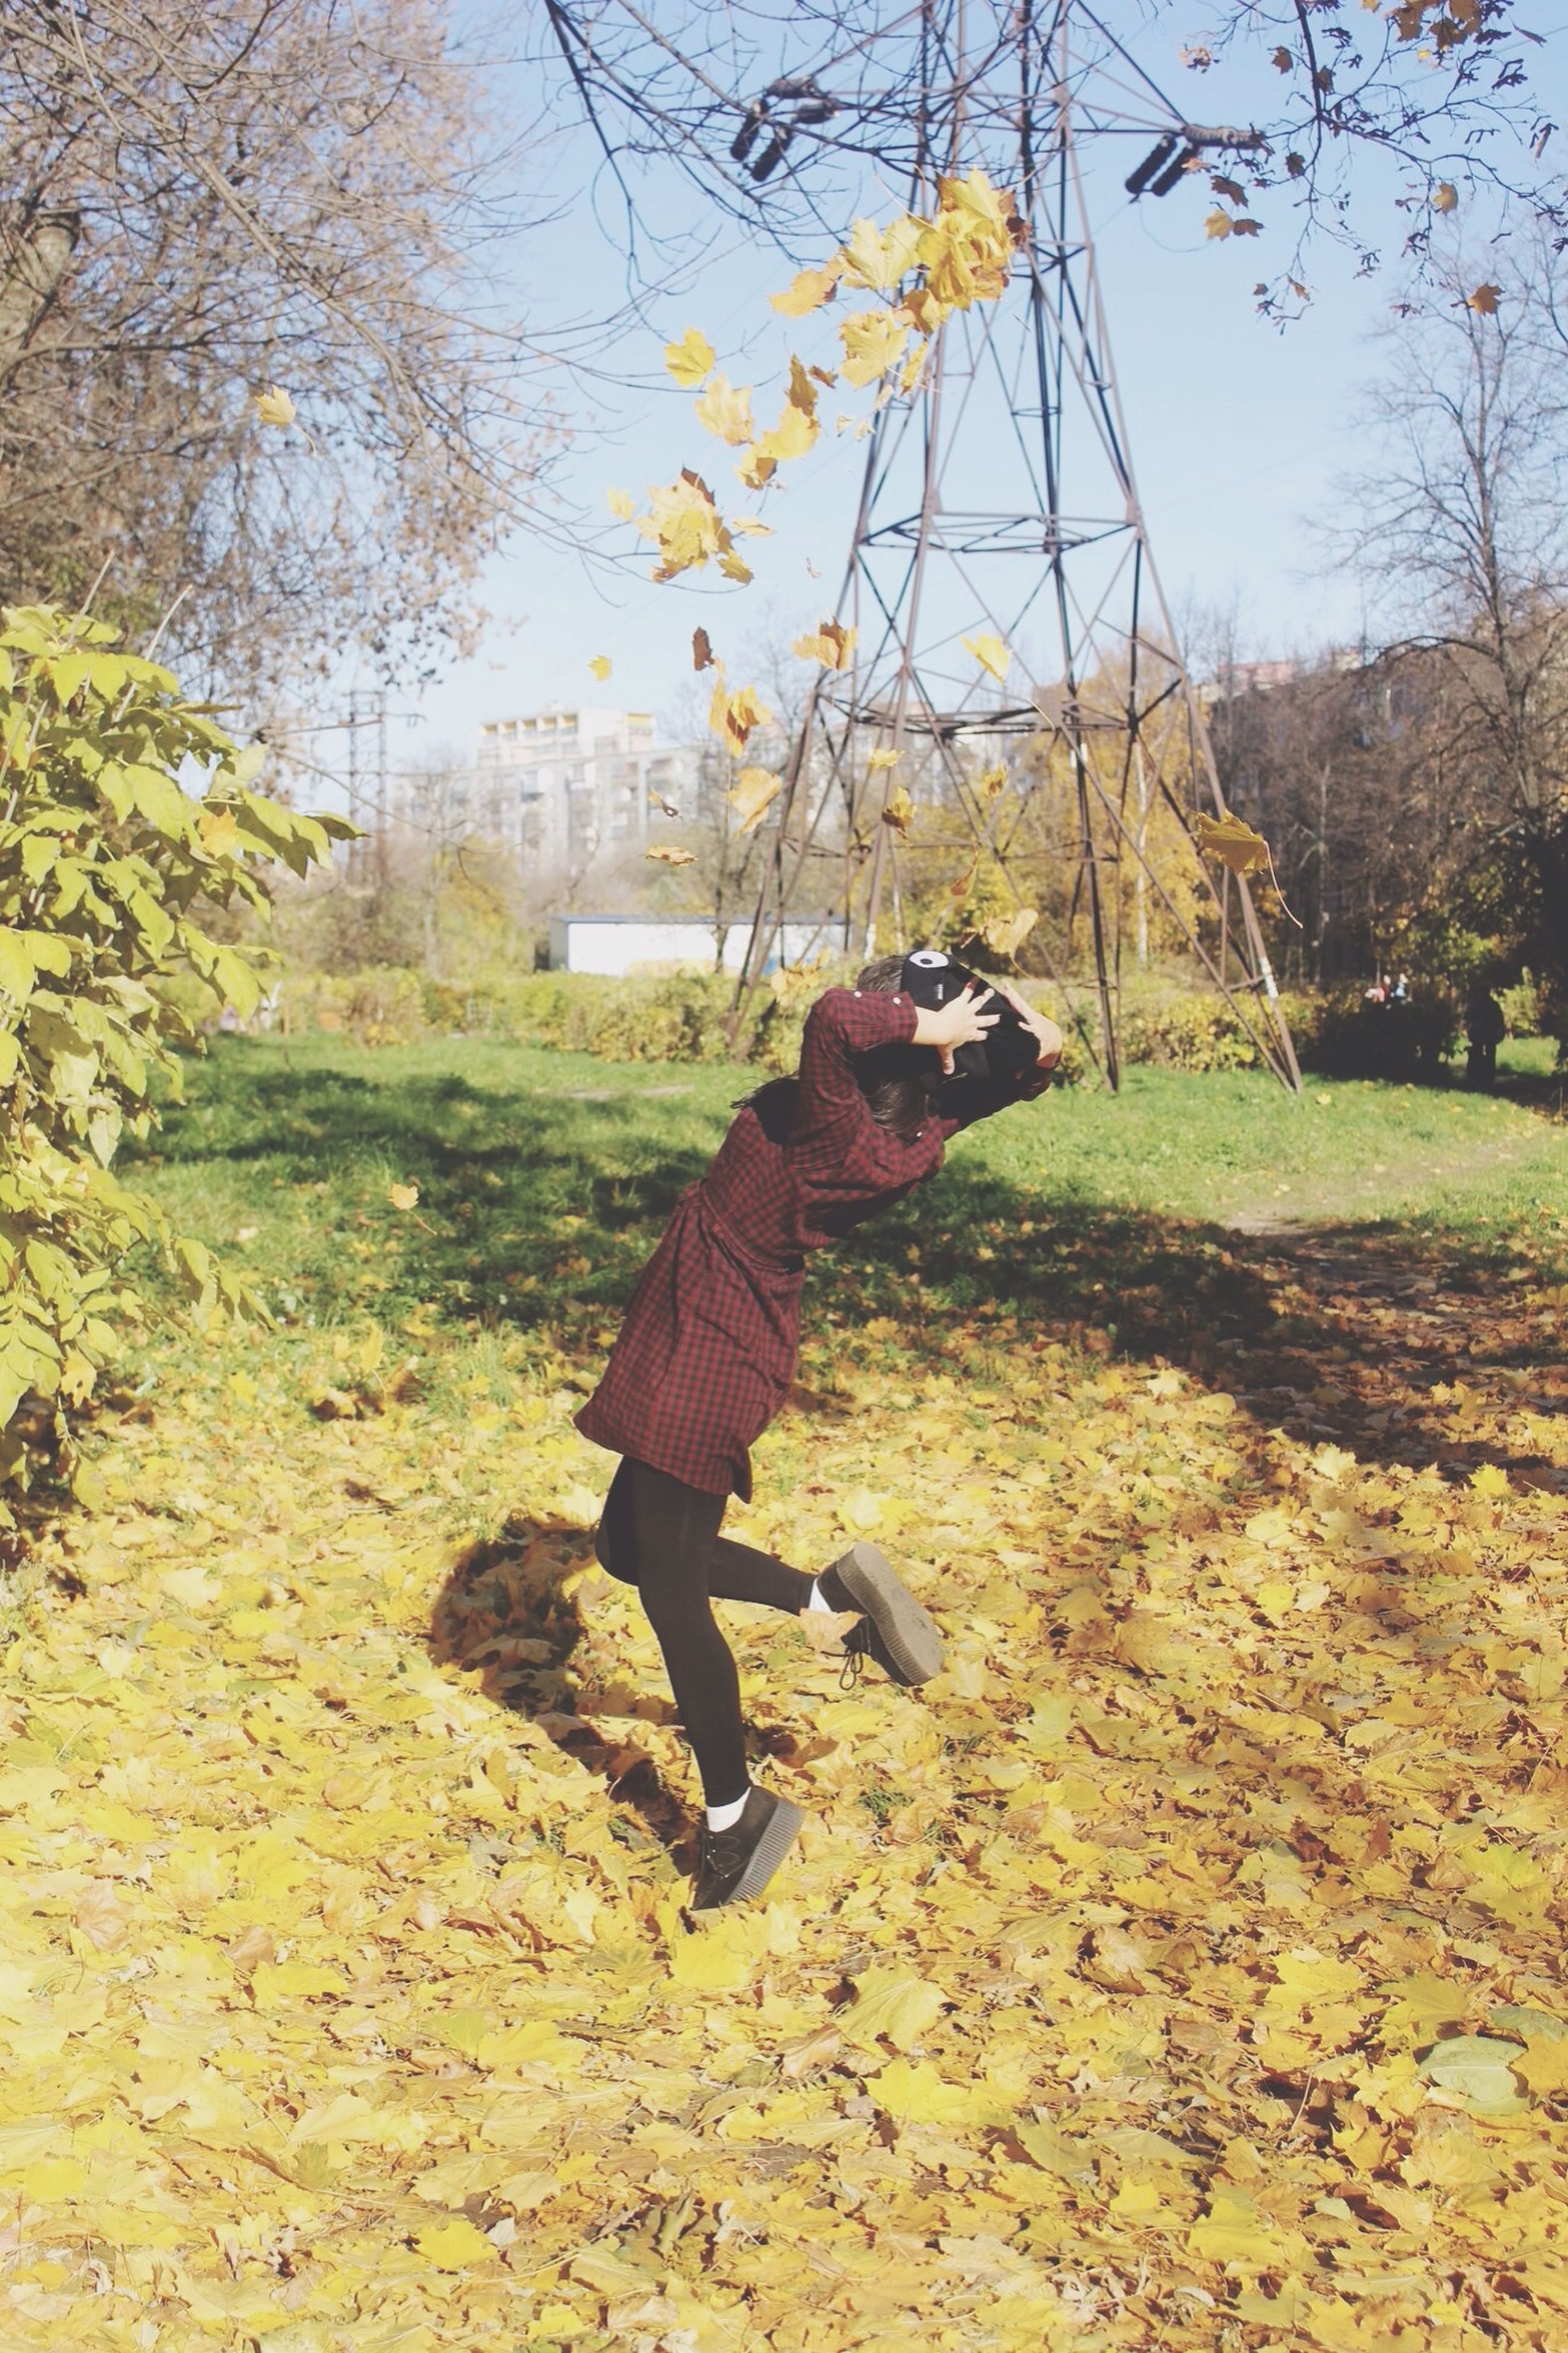 lifestyles, water, full length, autumn, leisure activity, tree, reflection, day, umbrella, standing, change, men, nature, outdoors, walking, season, built structure, grass